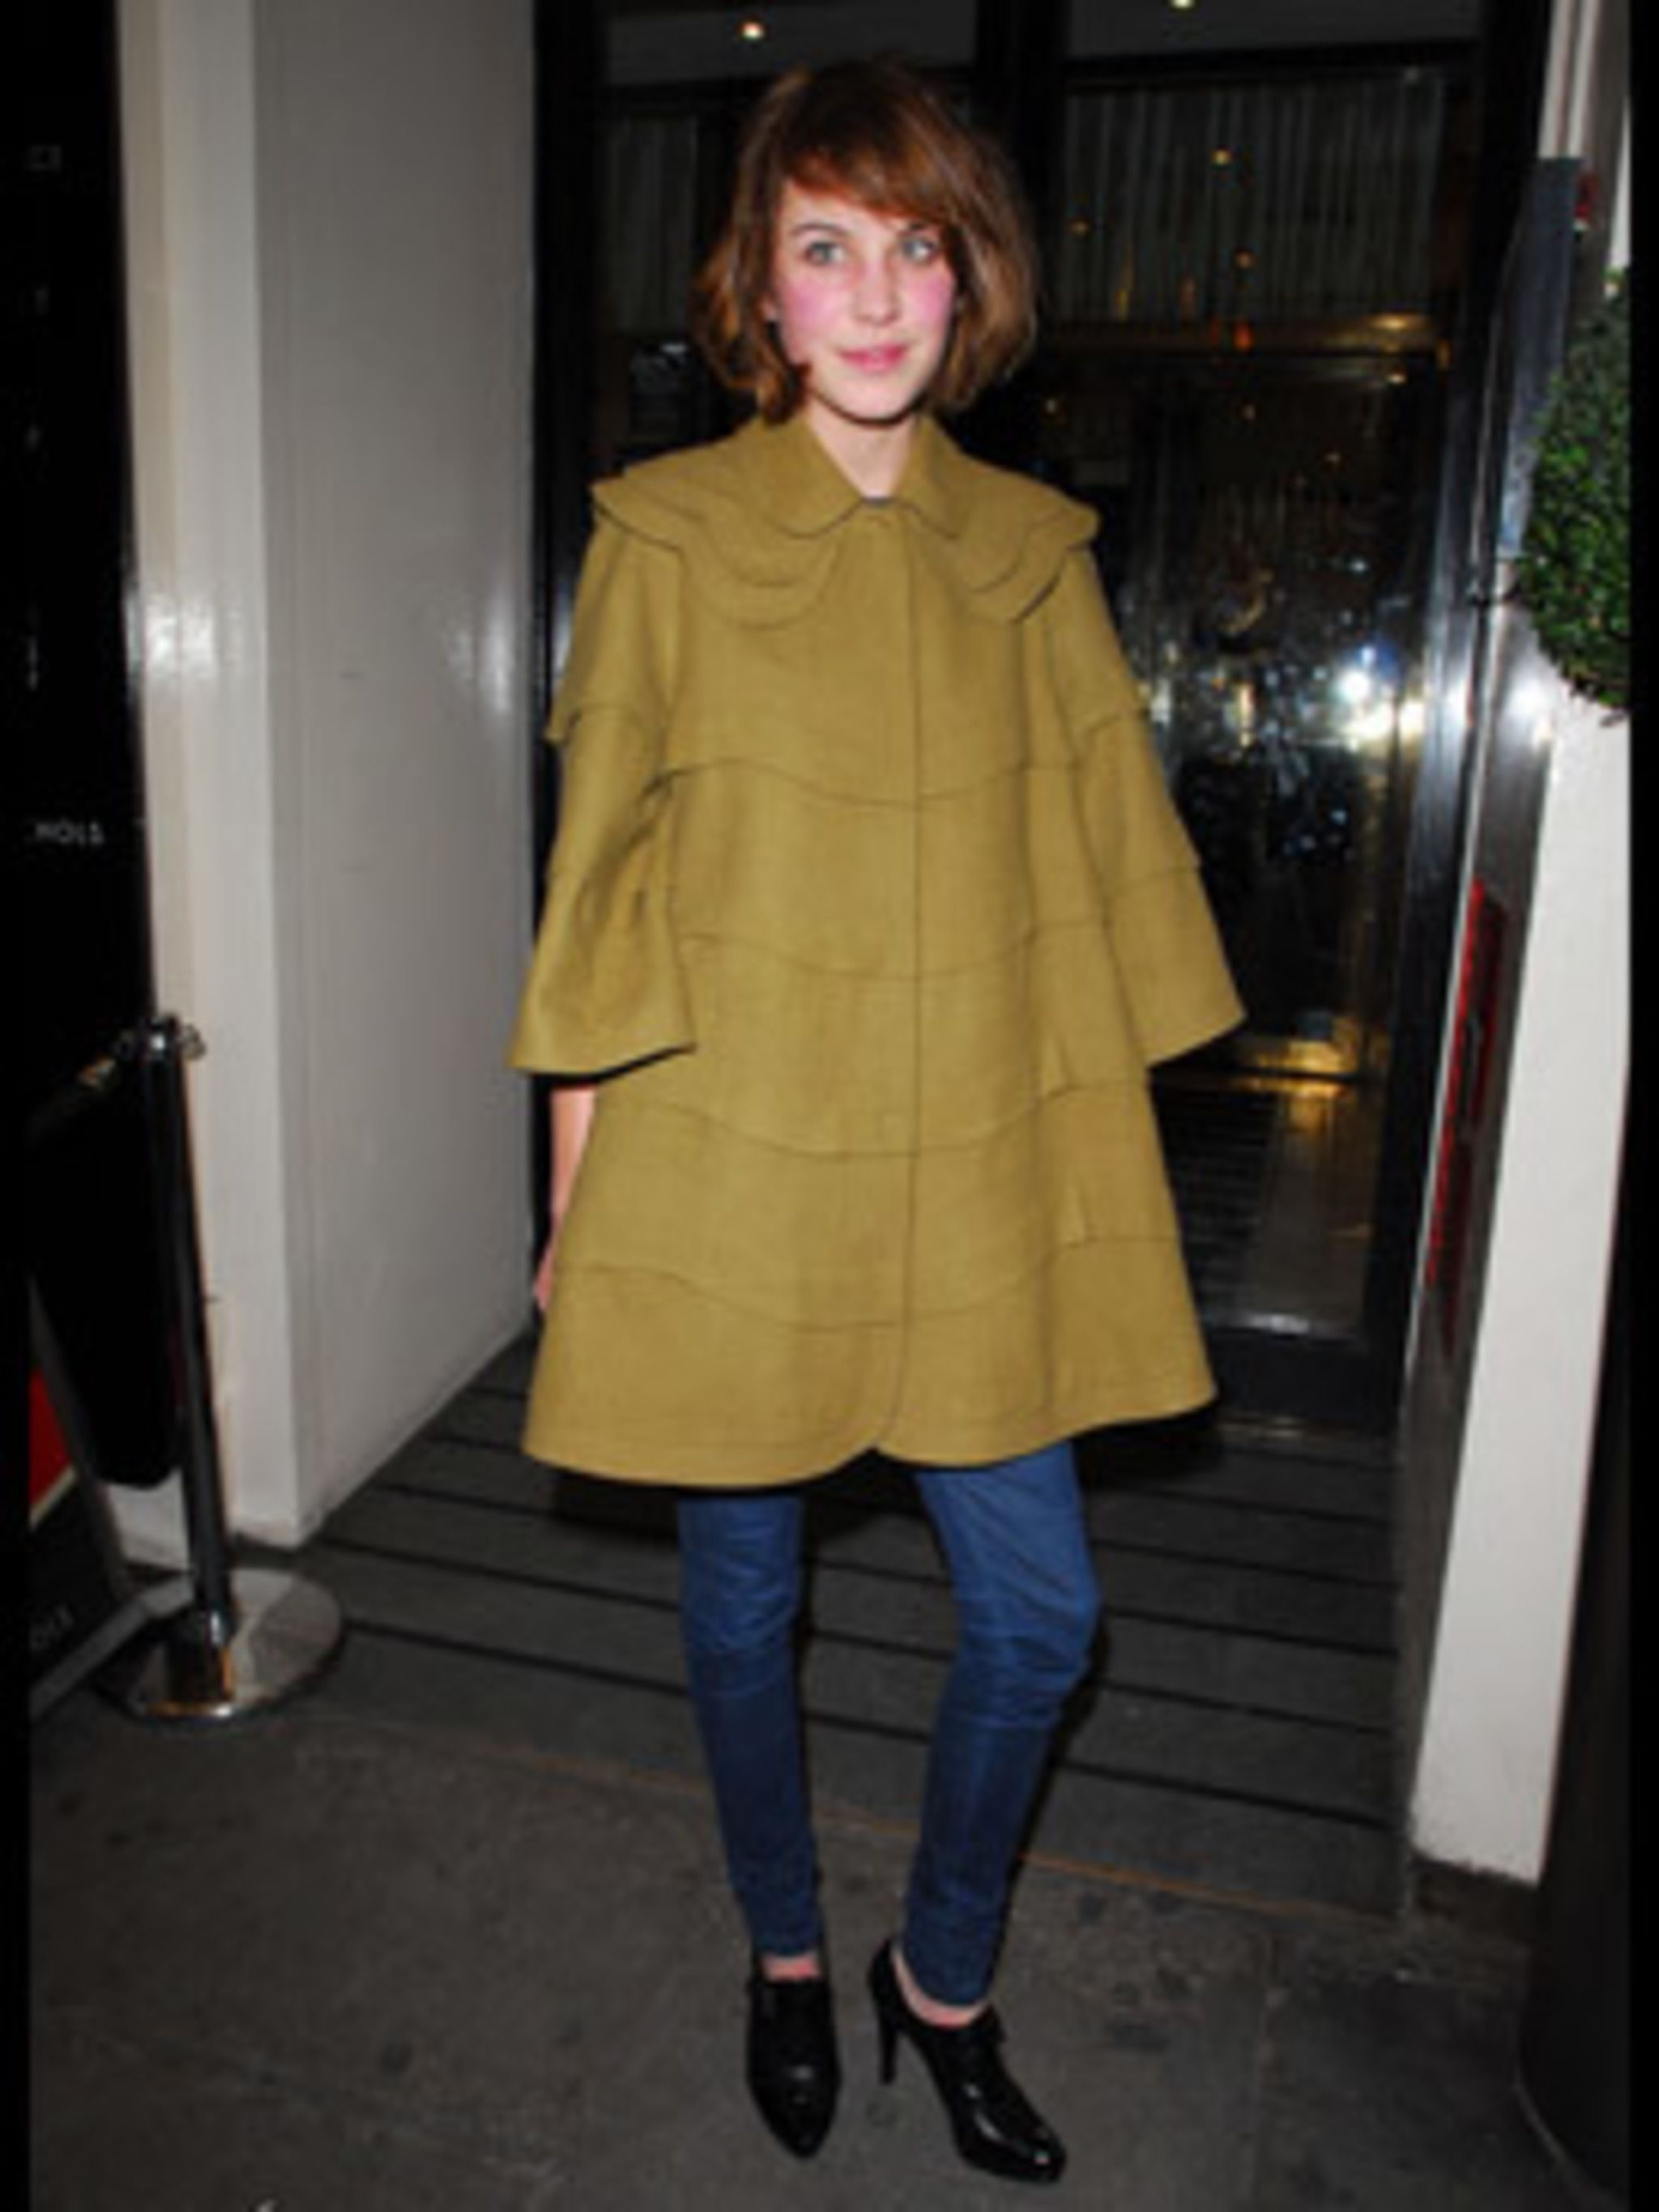 <p>Alexa's our caped fashion crusader in her mustard cloak, expertly teamed with super skinny jeans and high heels.</p>